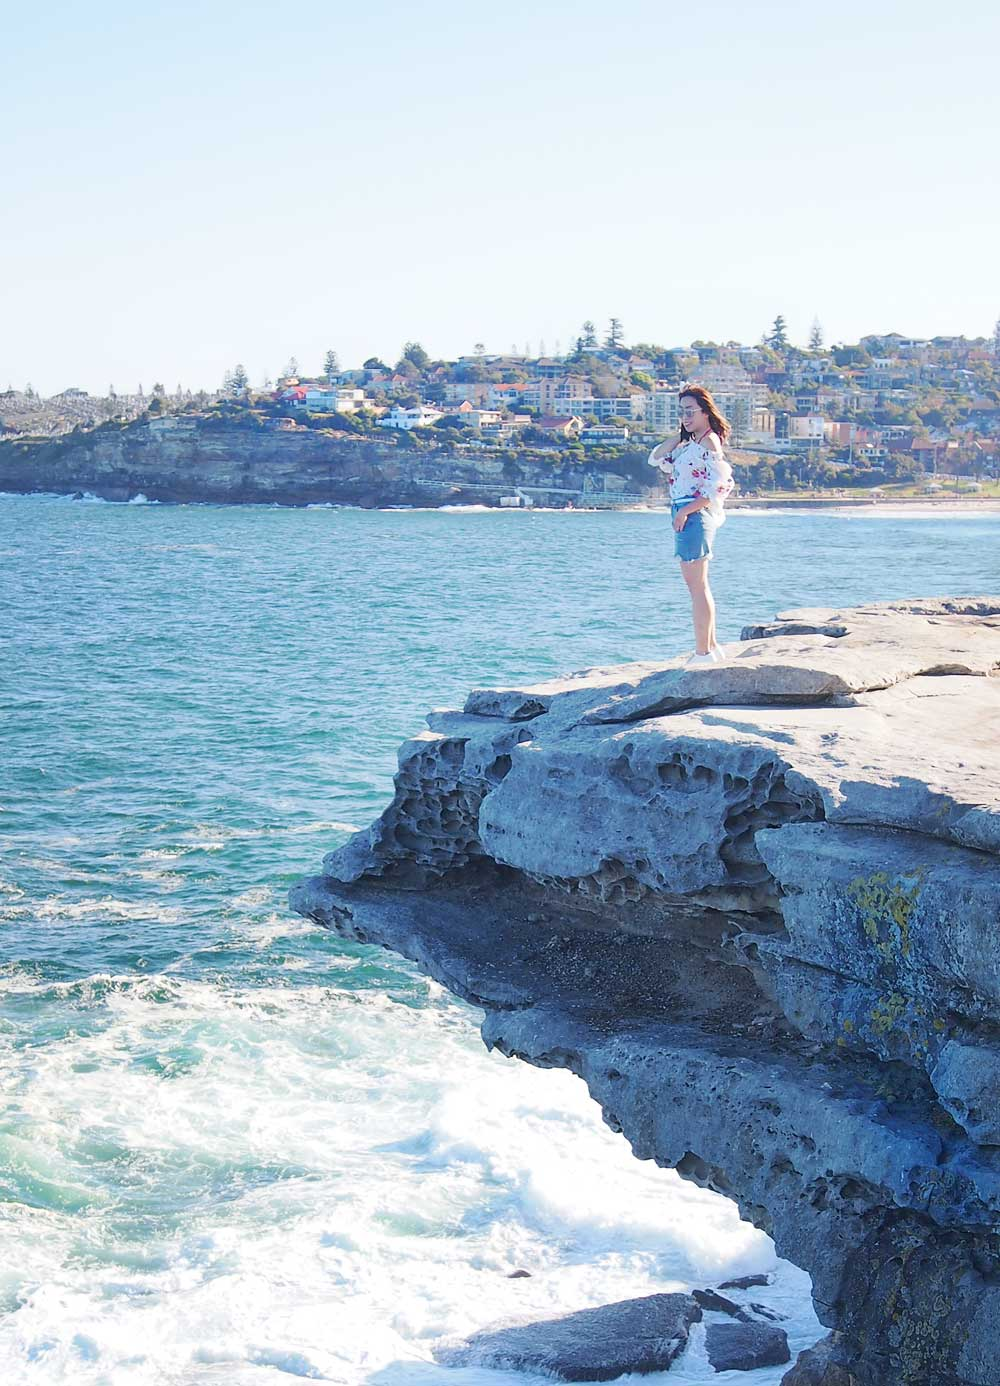 Bondi to Coogee Walk - Down Under Travel Guide: What You Can Eat and Do in Sydney